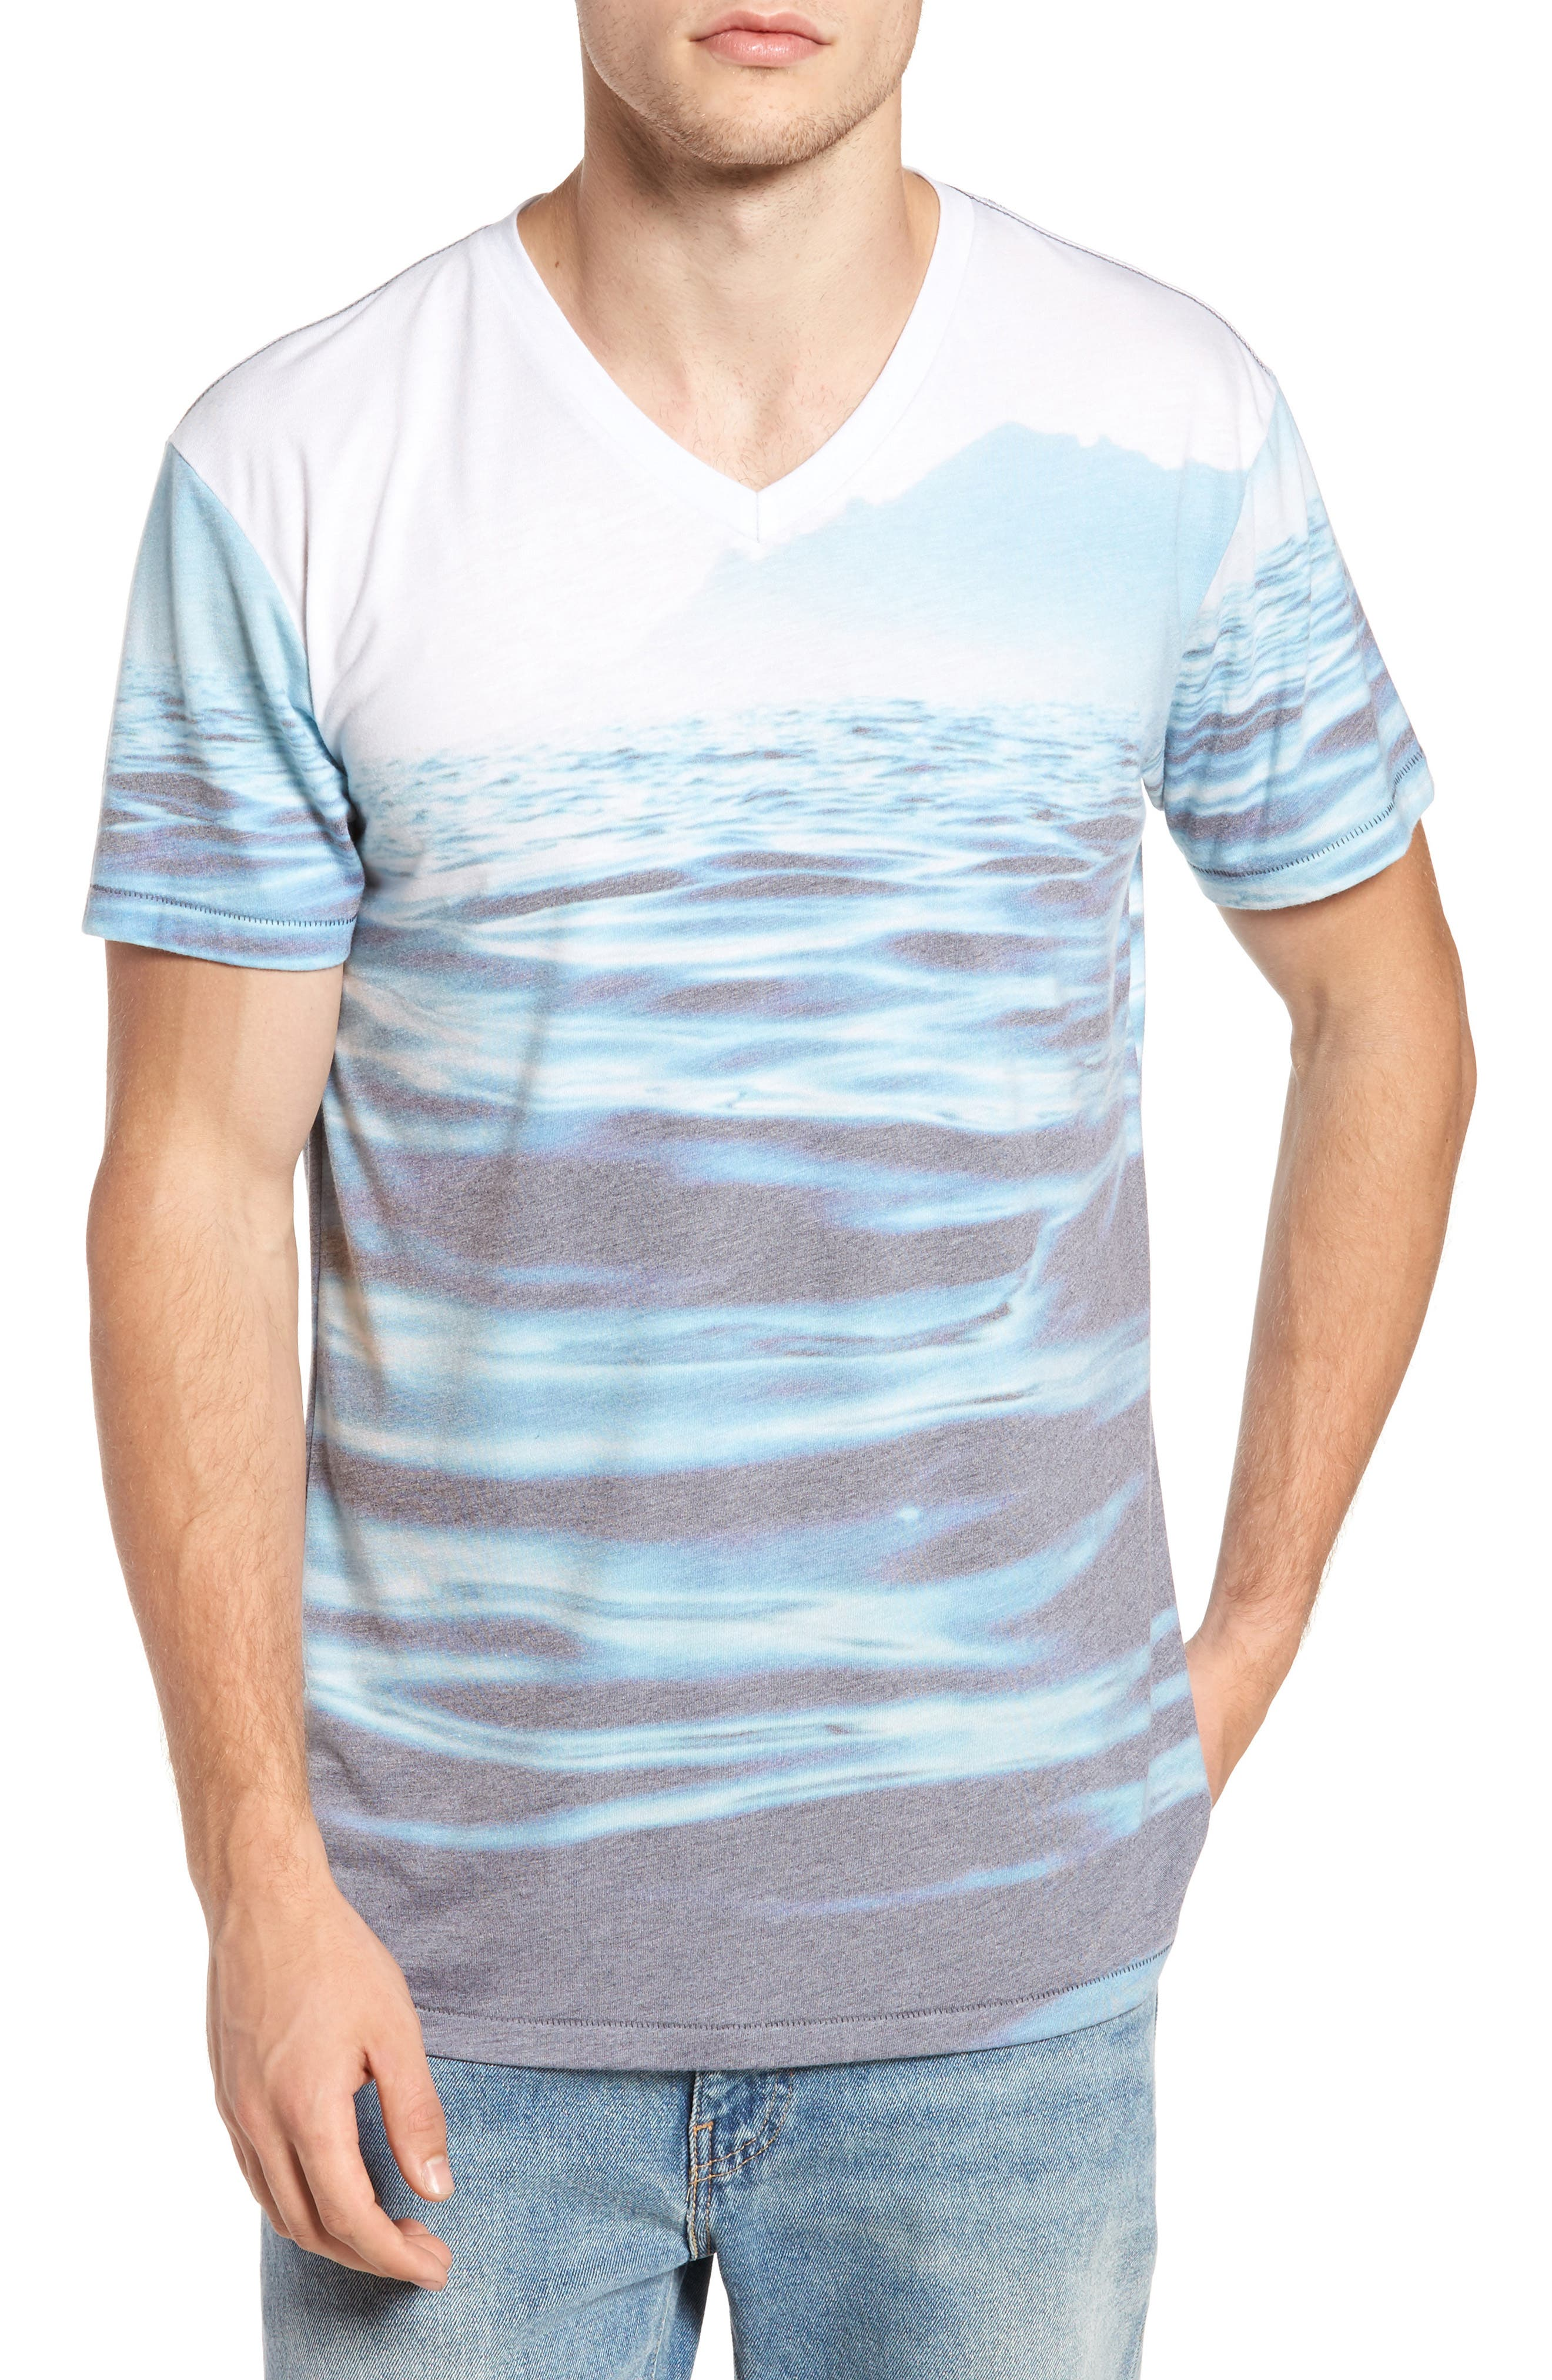 Mirage Waters T-Shirt,                         Main,                         color, 460